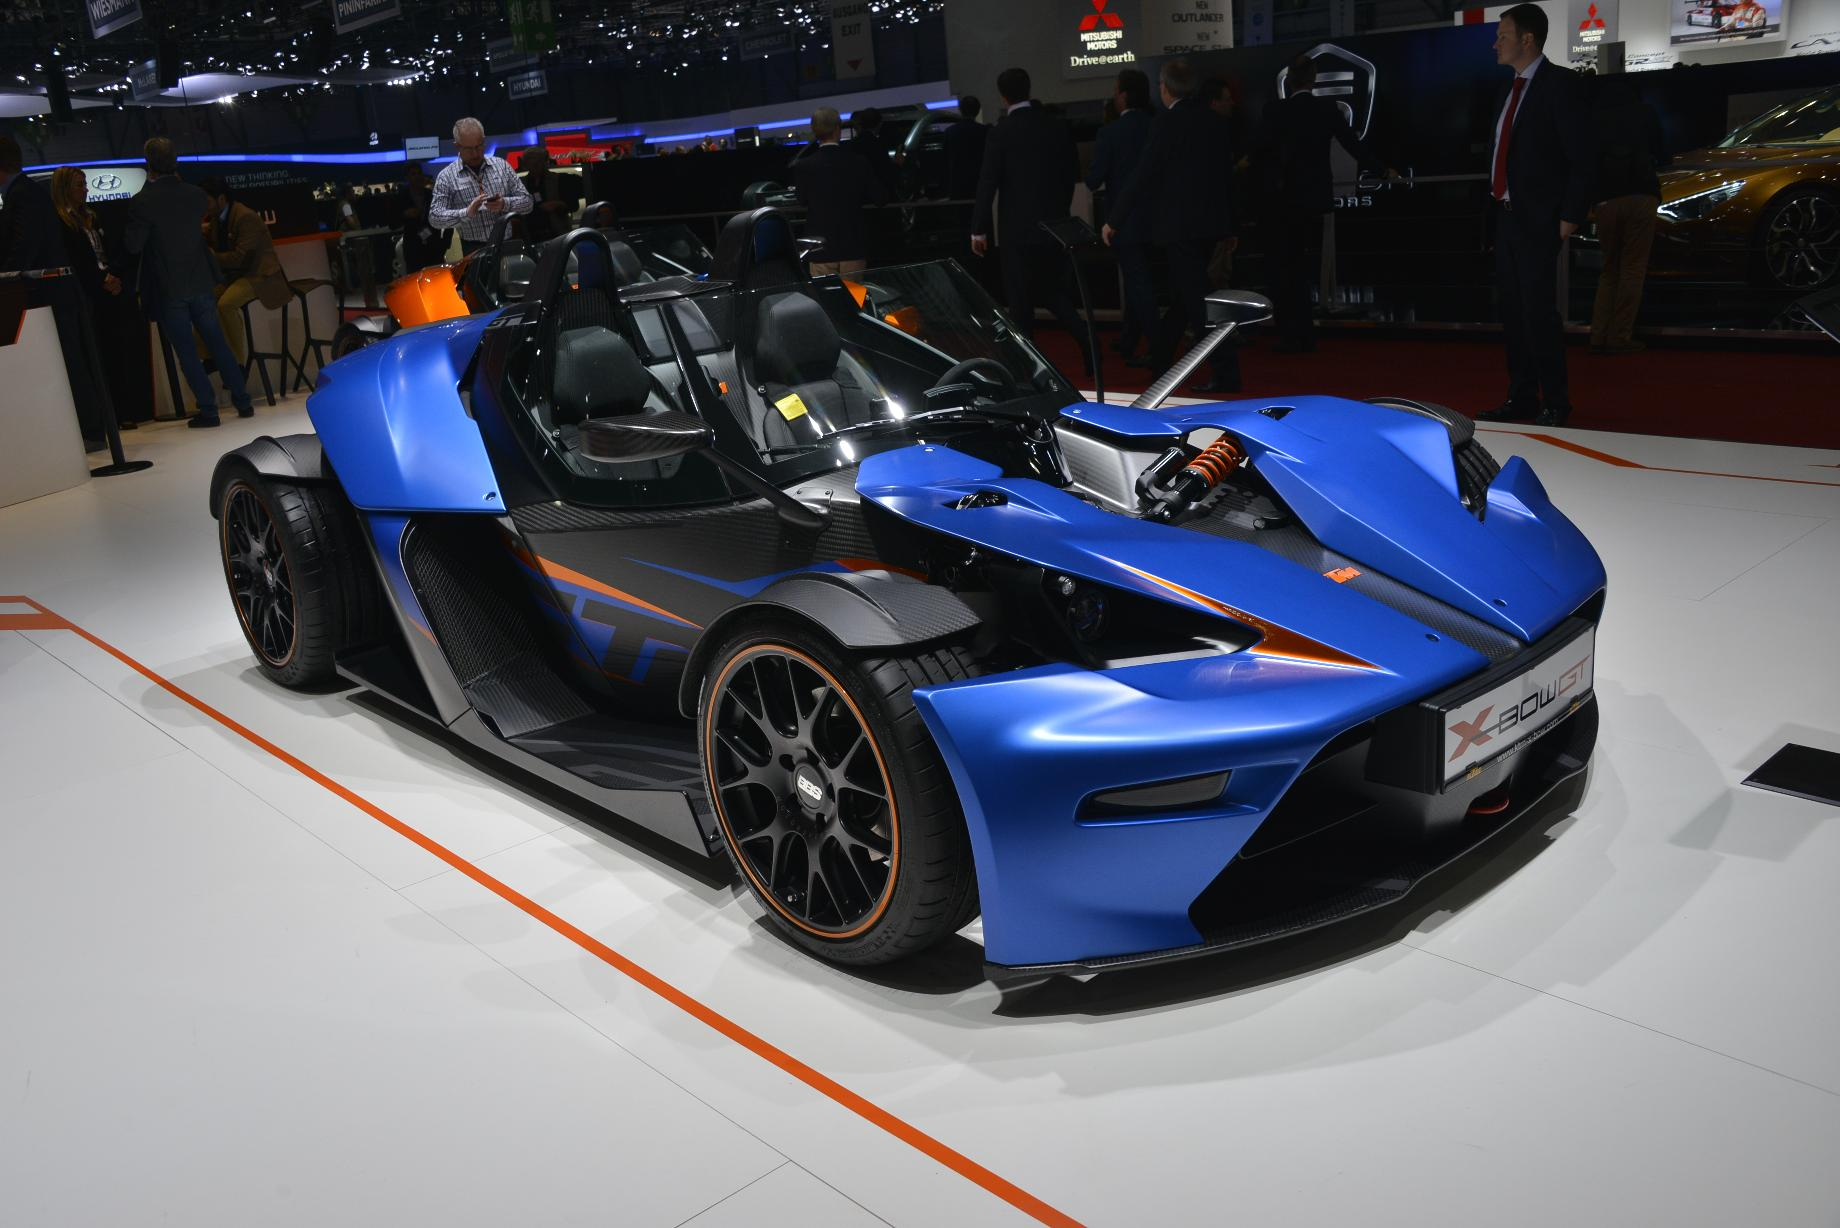 new ktm x bow gt shown in detail at geneva 2013 autoevolution. Black Bedroom Furniture Sets. Home Design Ideas